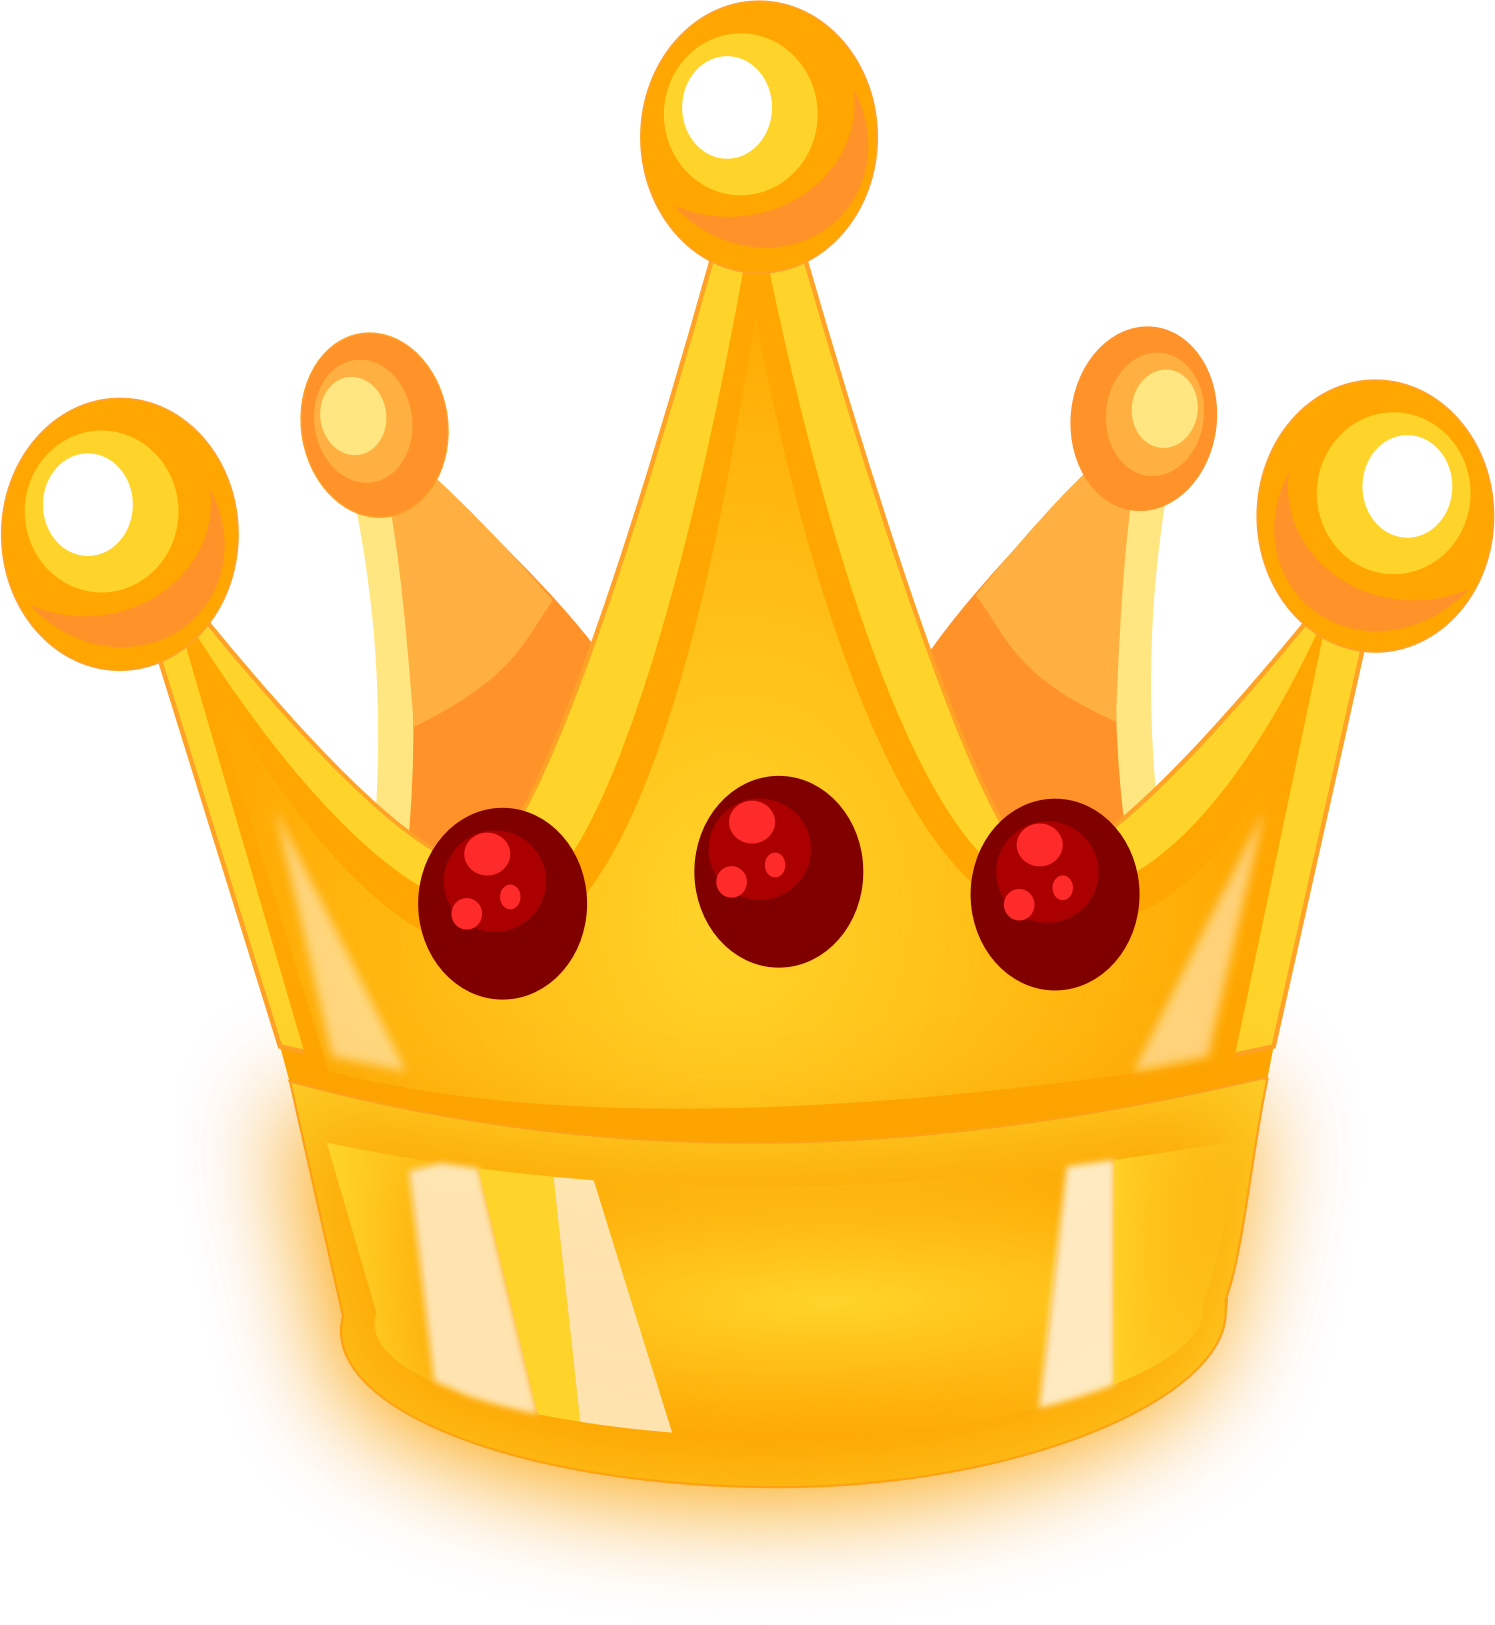 Free royal crown clipart transparent library Clipart - Royal Crown with no background transparent library